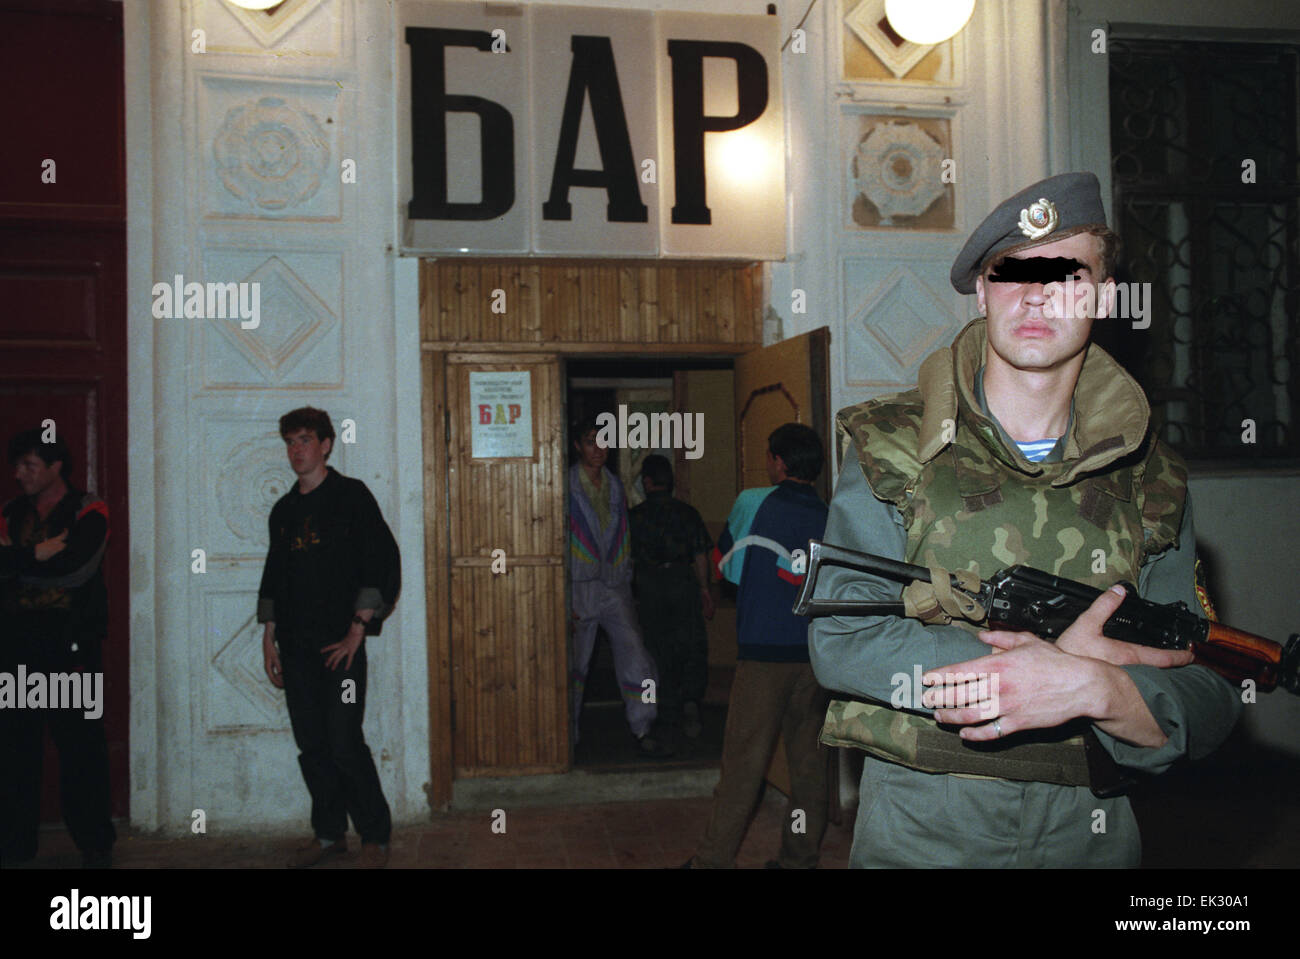 Moscow. A soldier of Moscow Special Designation Police unit during an inspection. - Stock Image